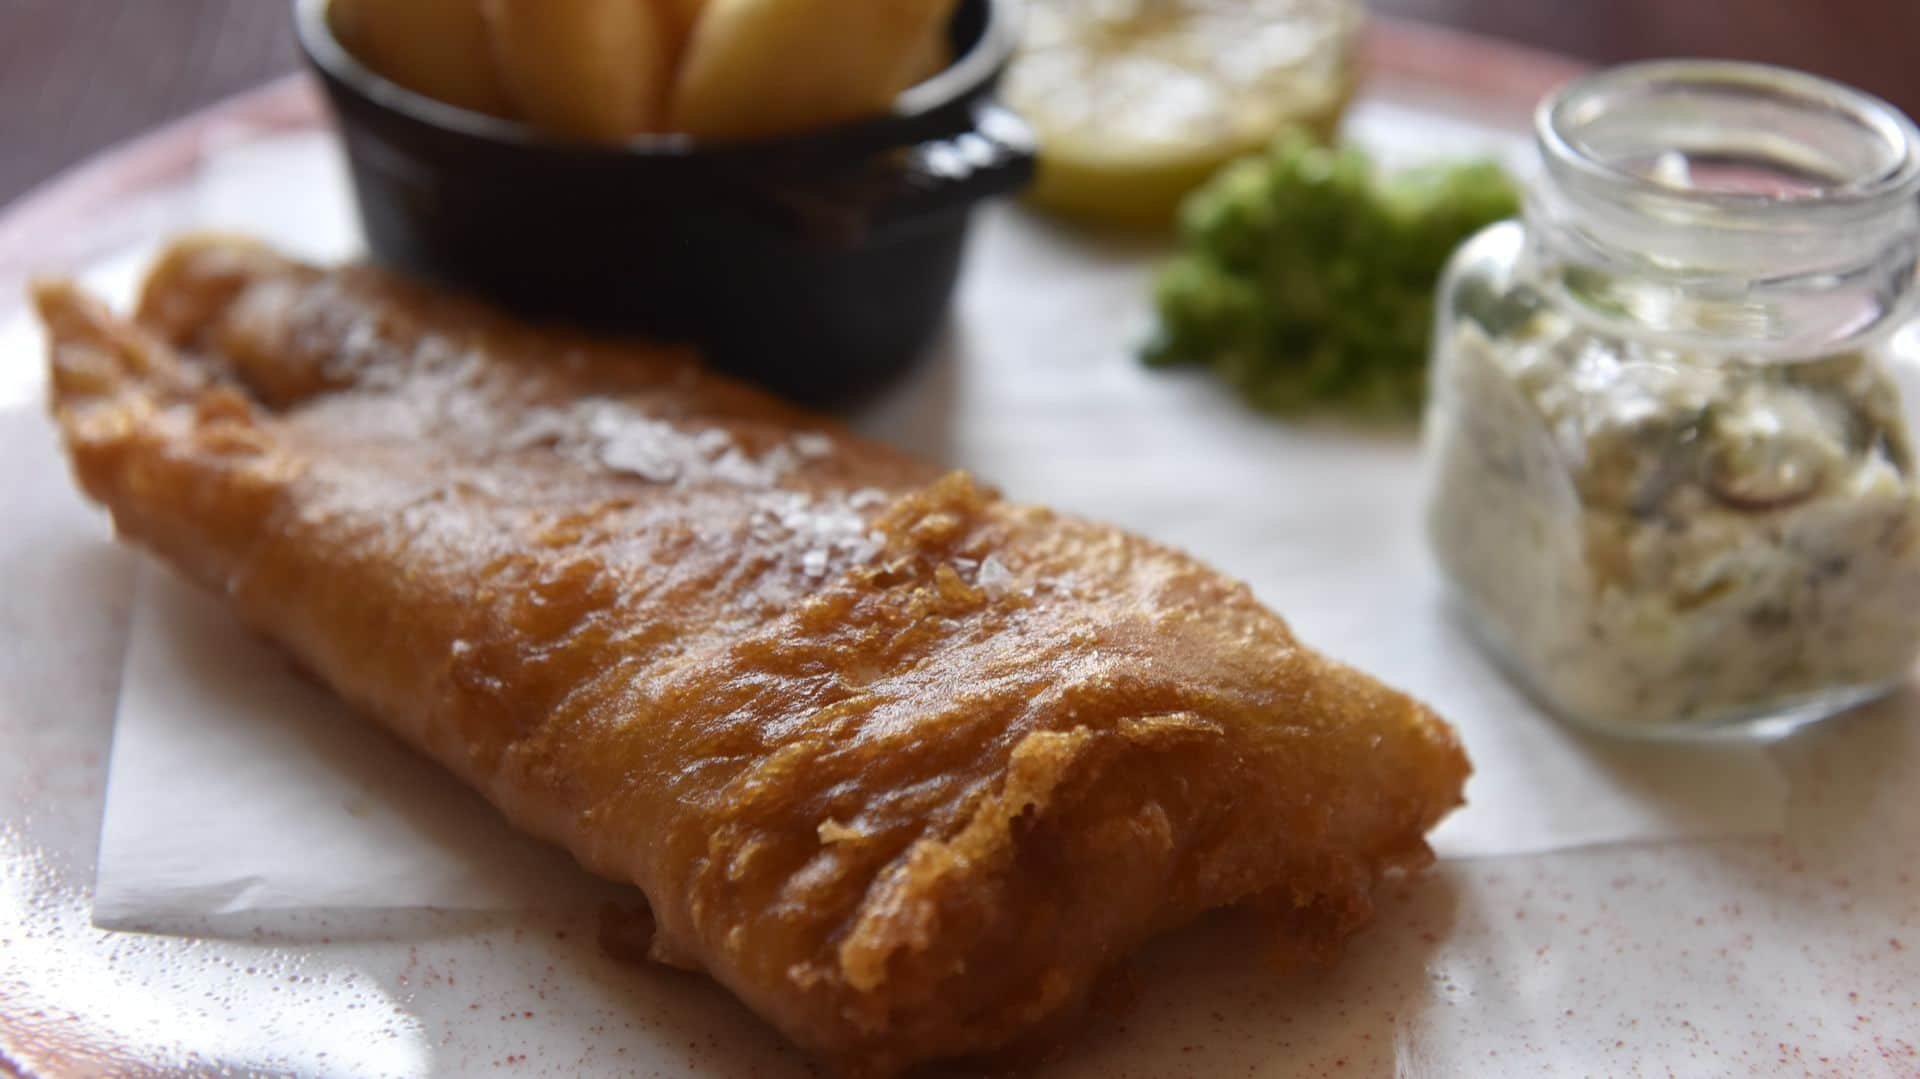 Every Thursday: £7.50 Fish & Chips